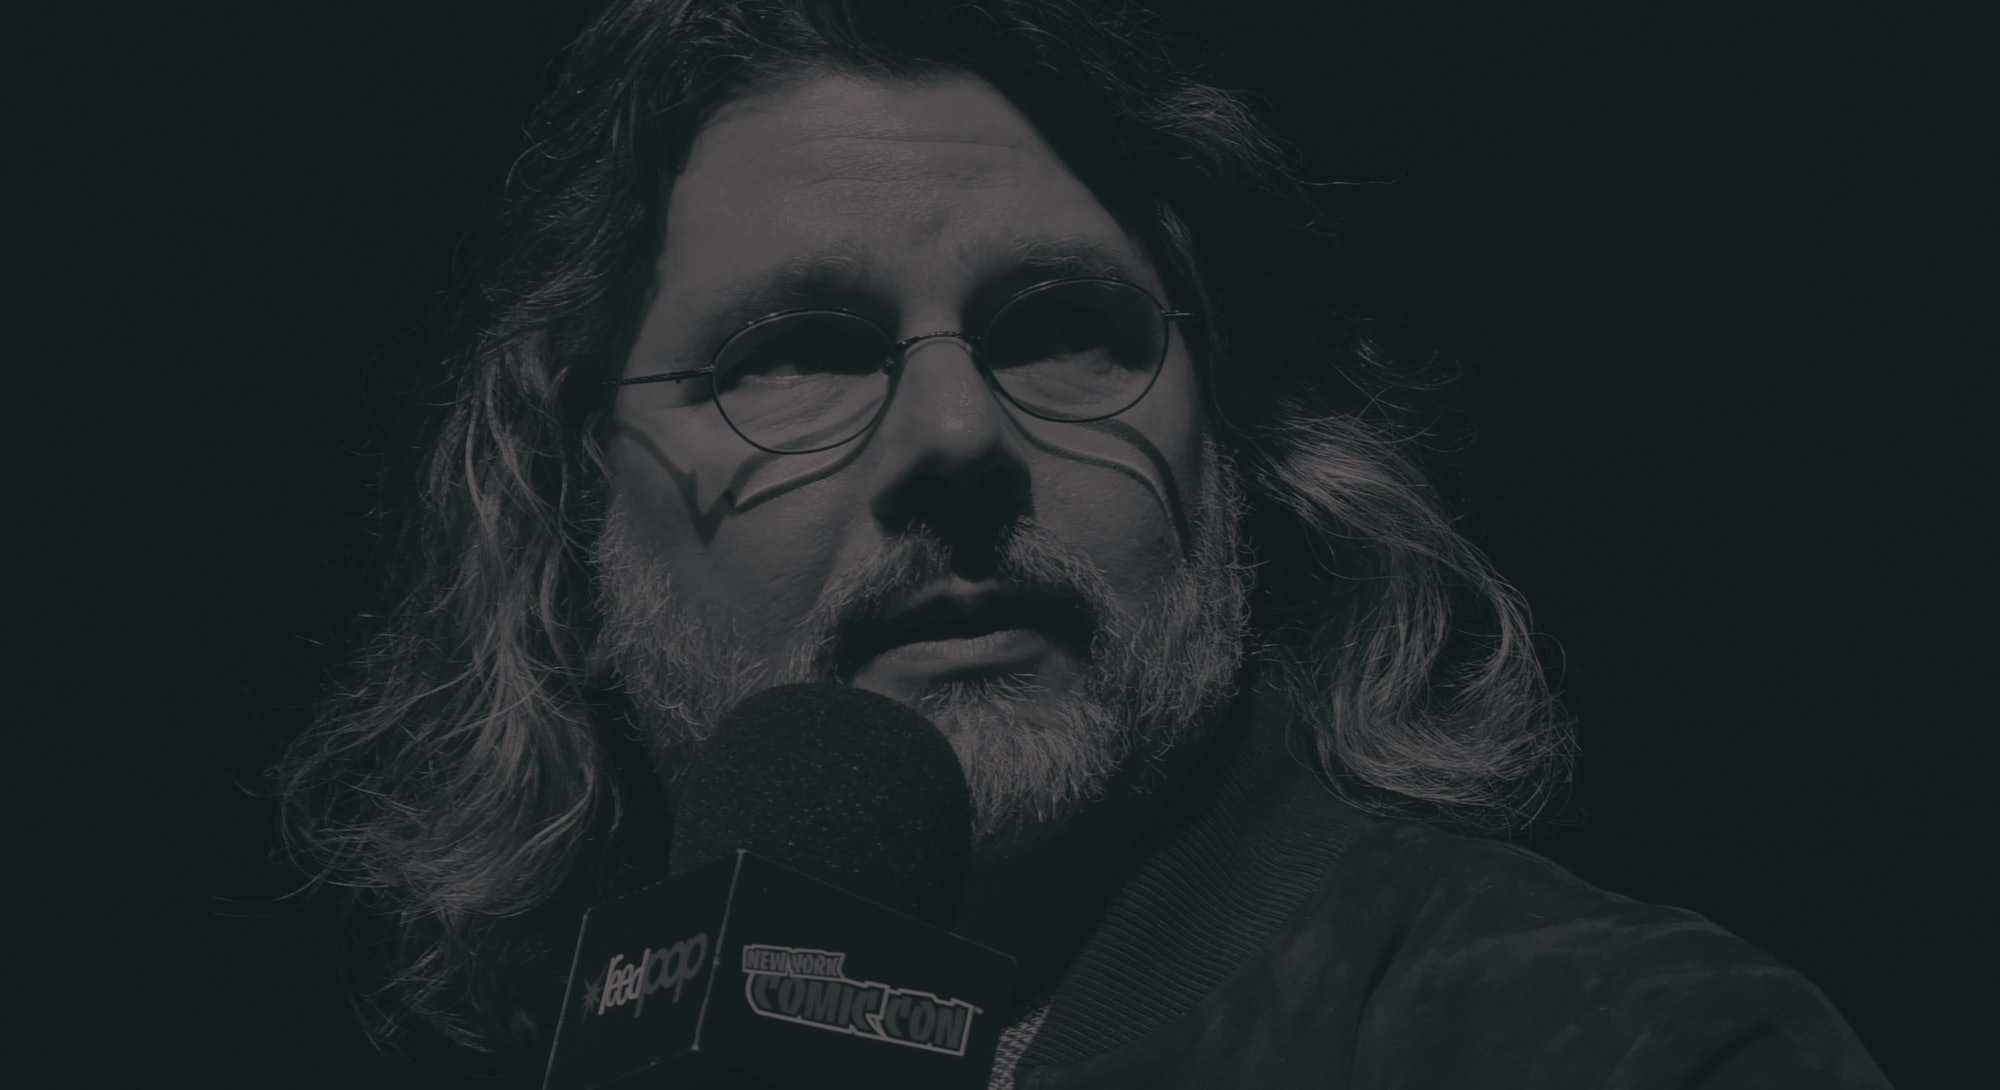 """NEW YORK, NEW YORK - OCTOBER 05: Ronald D. Moore speaks on stage at the """"For All Mankind"""": Exclusive Sneak Peek and Panel during New York Comic Con 2019 Day 3 at Hammerstein Ballroom on October 05, 2019 in New York City. (Photo by Eugene Gologursky/Getty Images for ReedPOP )"""